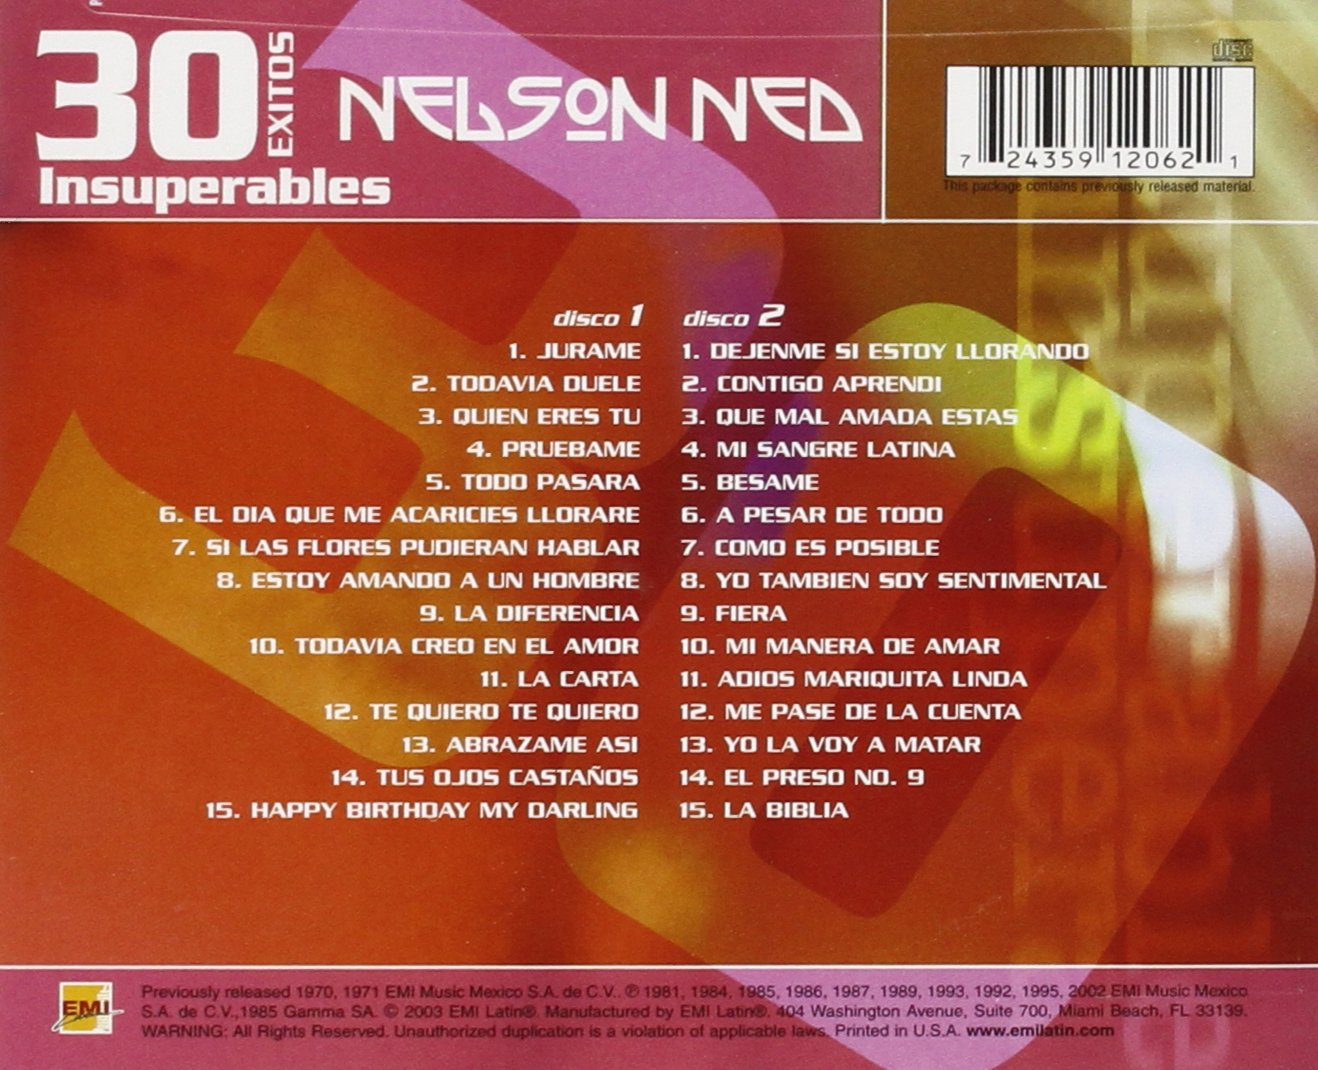 nelson ned - 30 exitos insuperables